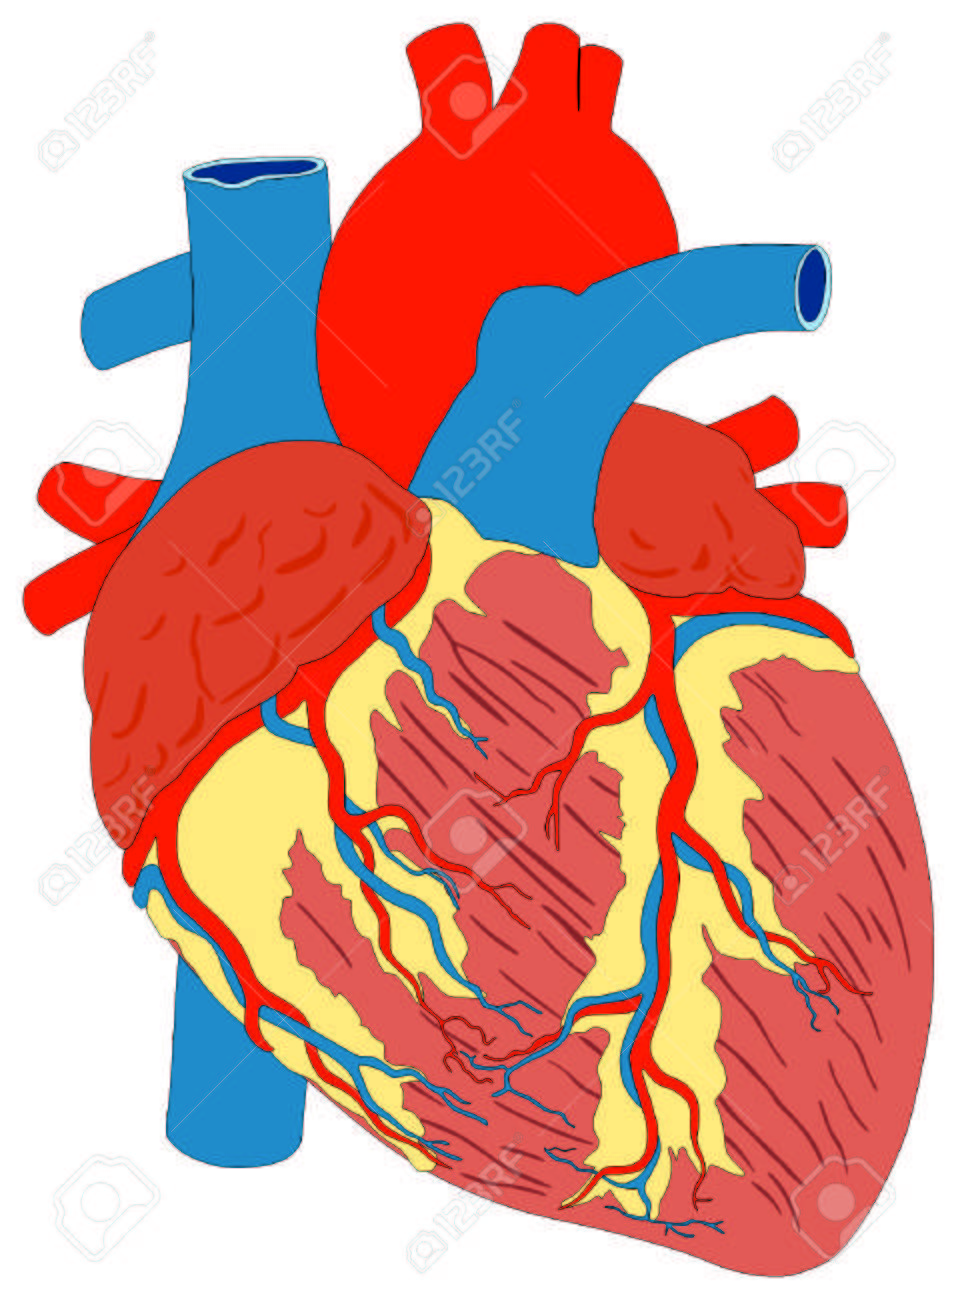 medium resolution of human heart muscle gross anatomy vector diagram unlabeled outside view with all parts aorta aortic arch